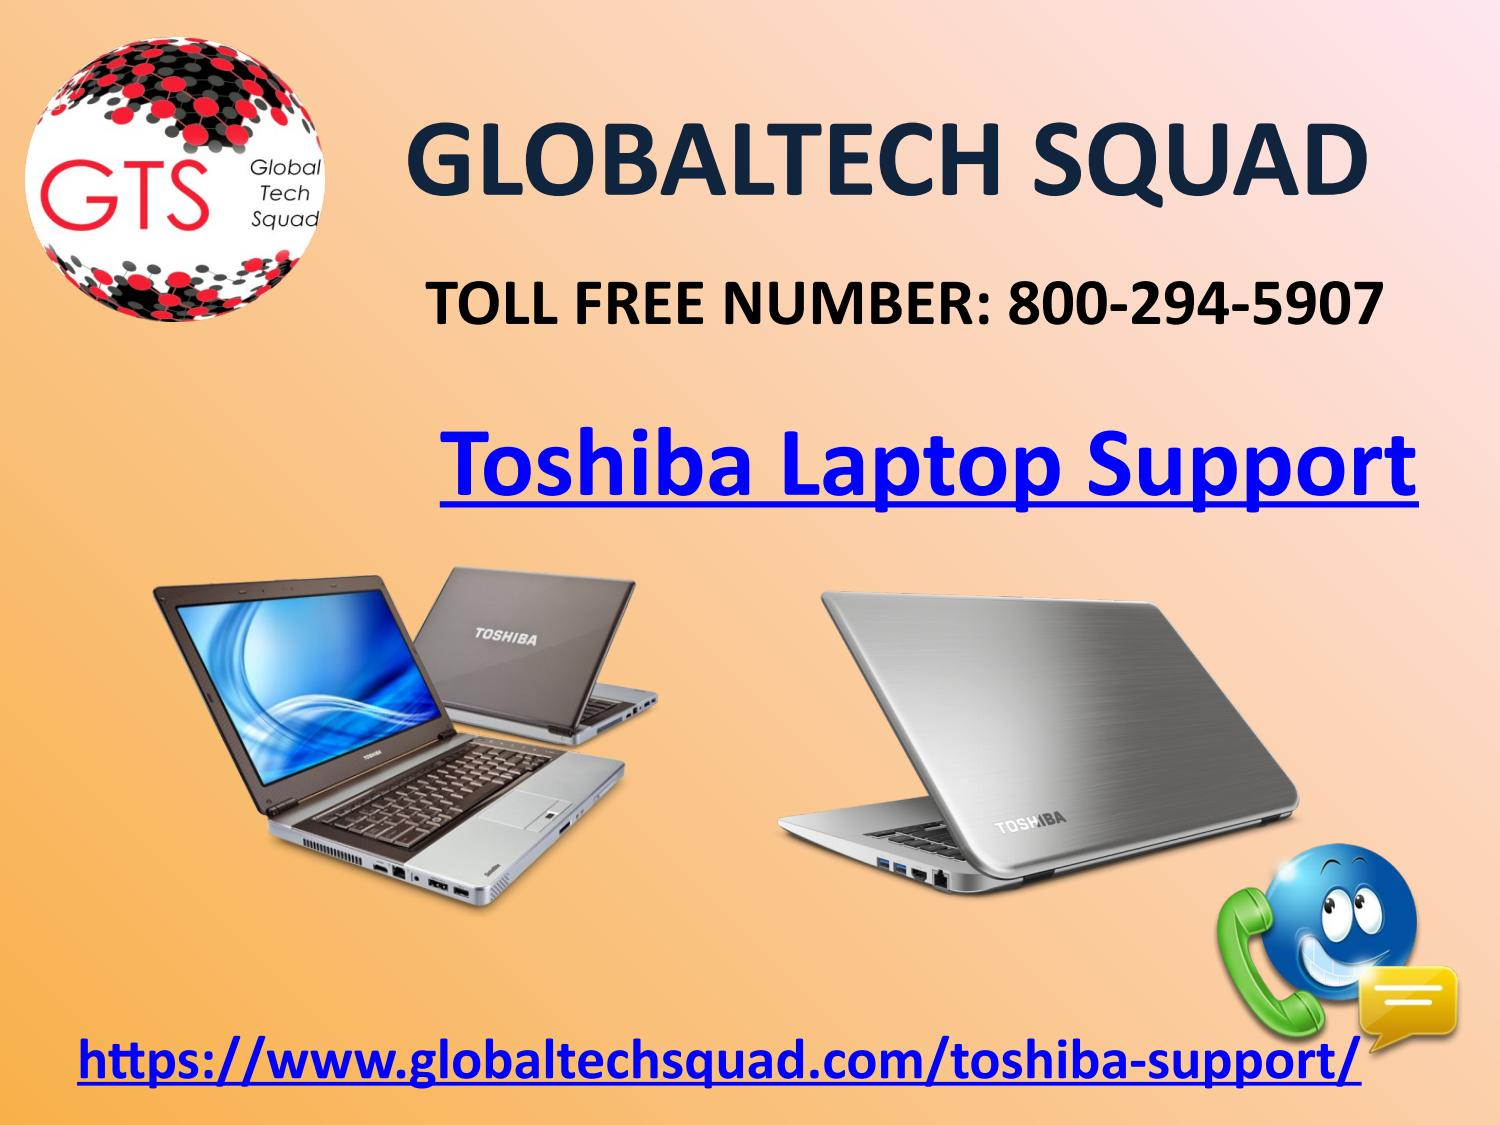 Toshiba laptop support [PPT] Download by Doutgen kroes - issuu